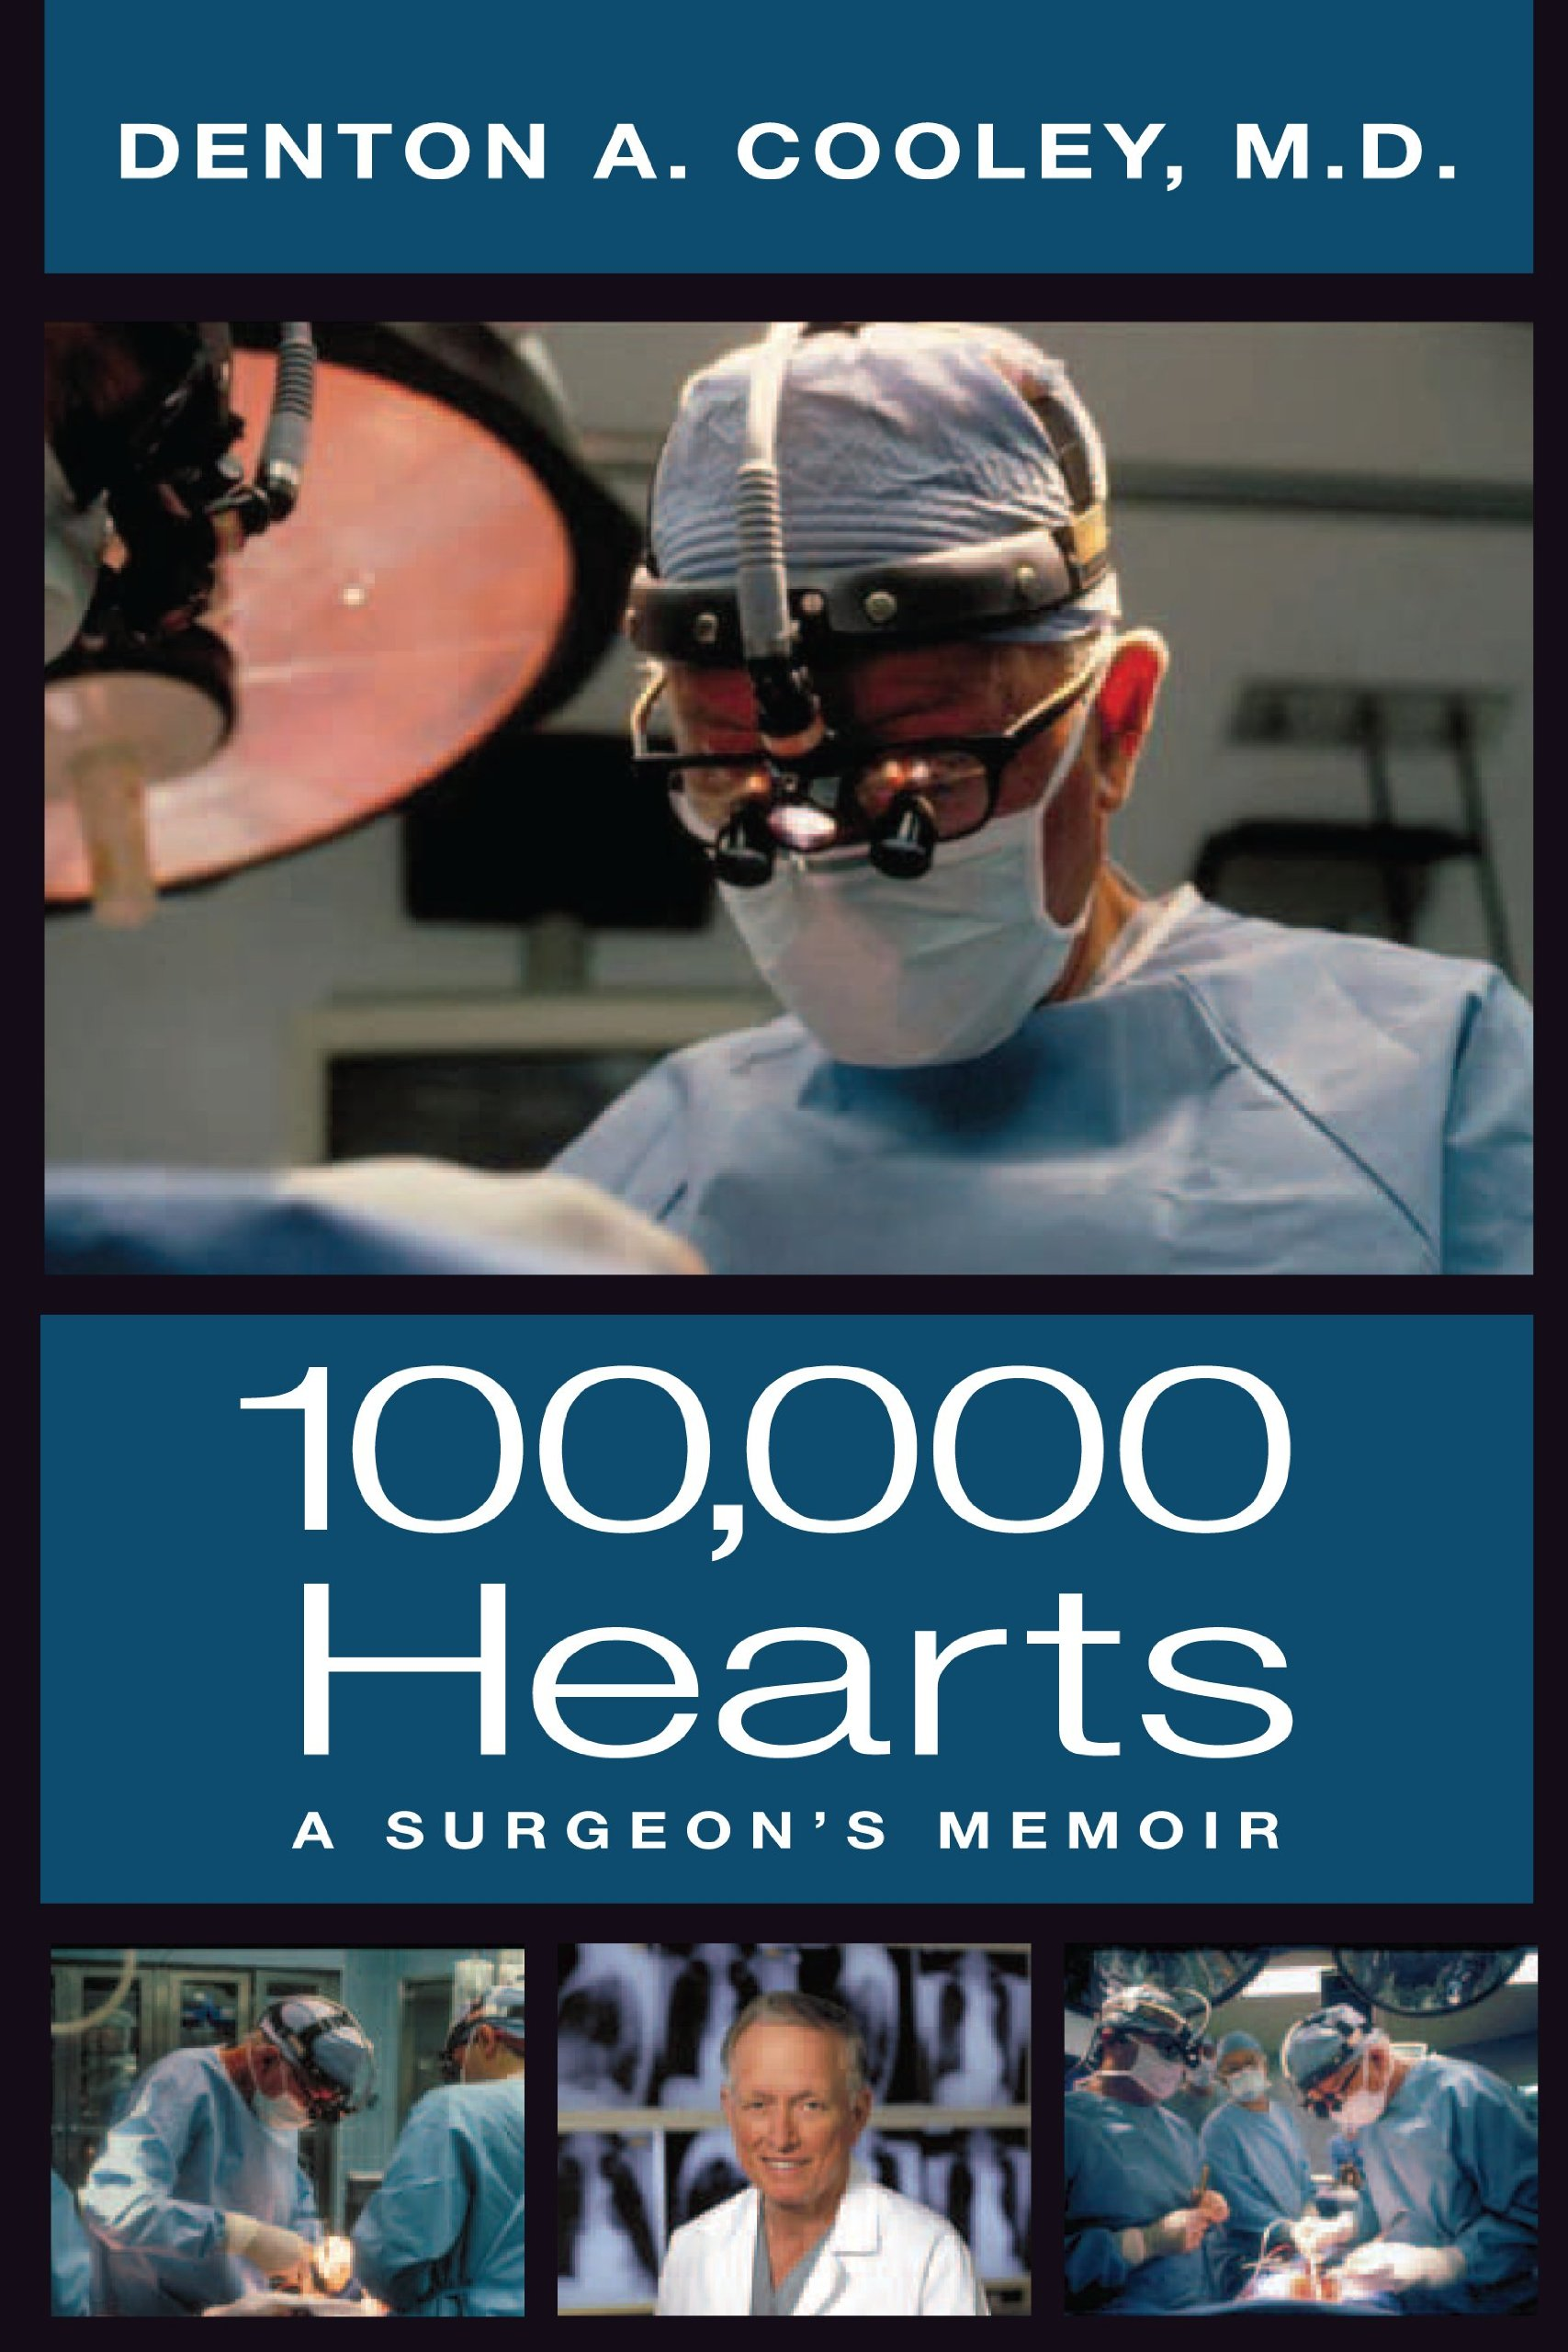 Buy 100, 000 Hearts: A Surgeon's Memoir Book Online at Low Prices in India  | 100, 000 Hearts: A Surgeon's Memoir Reviews & Ratings - Amazon.in